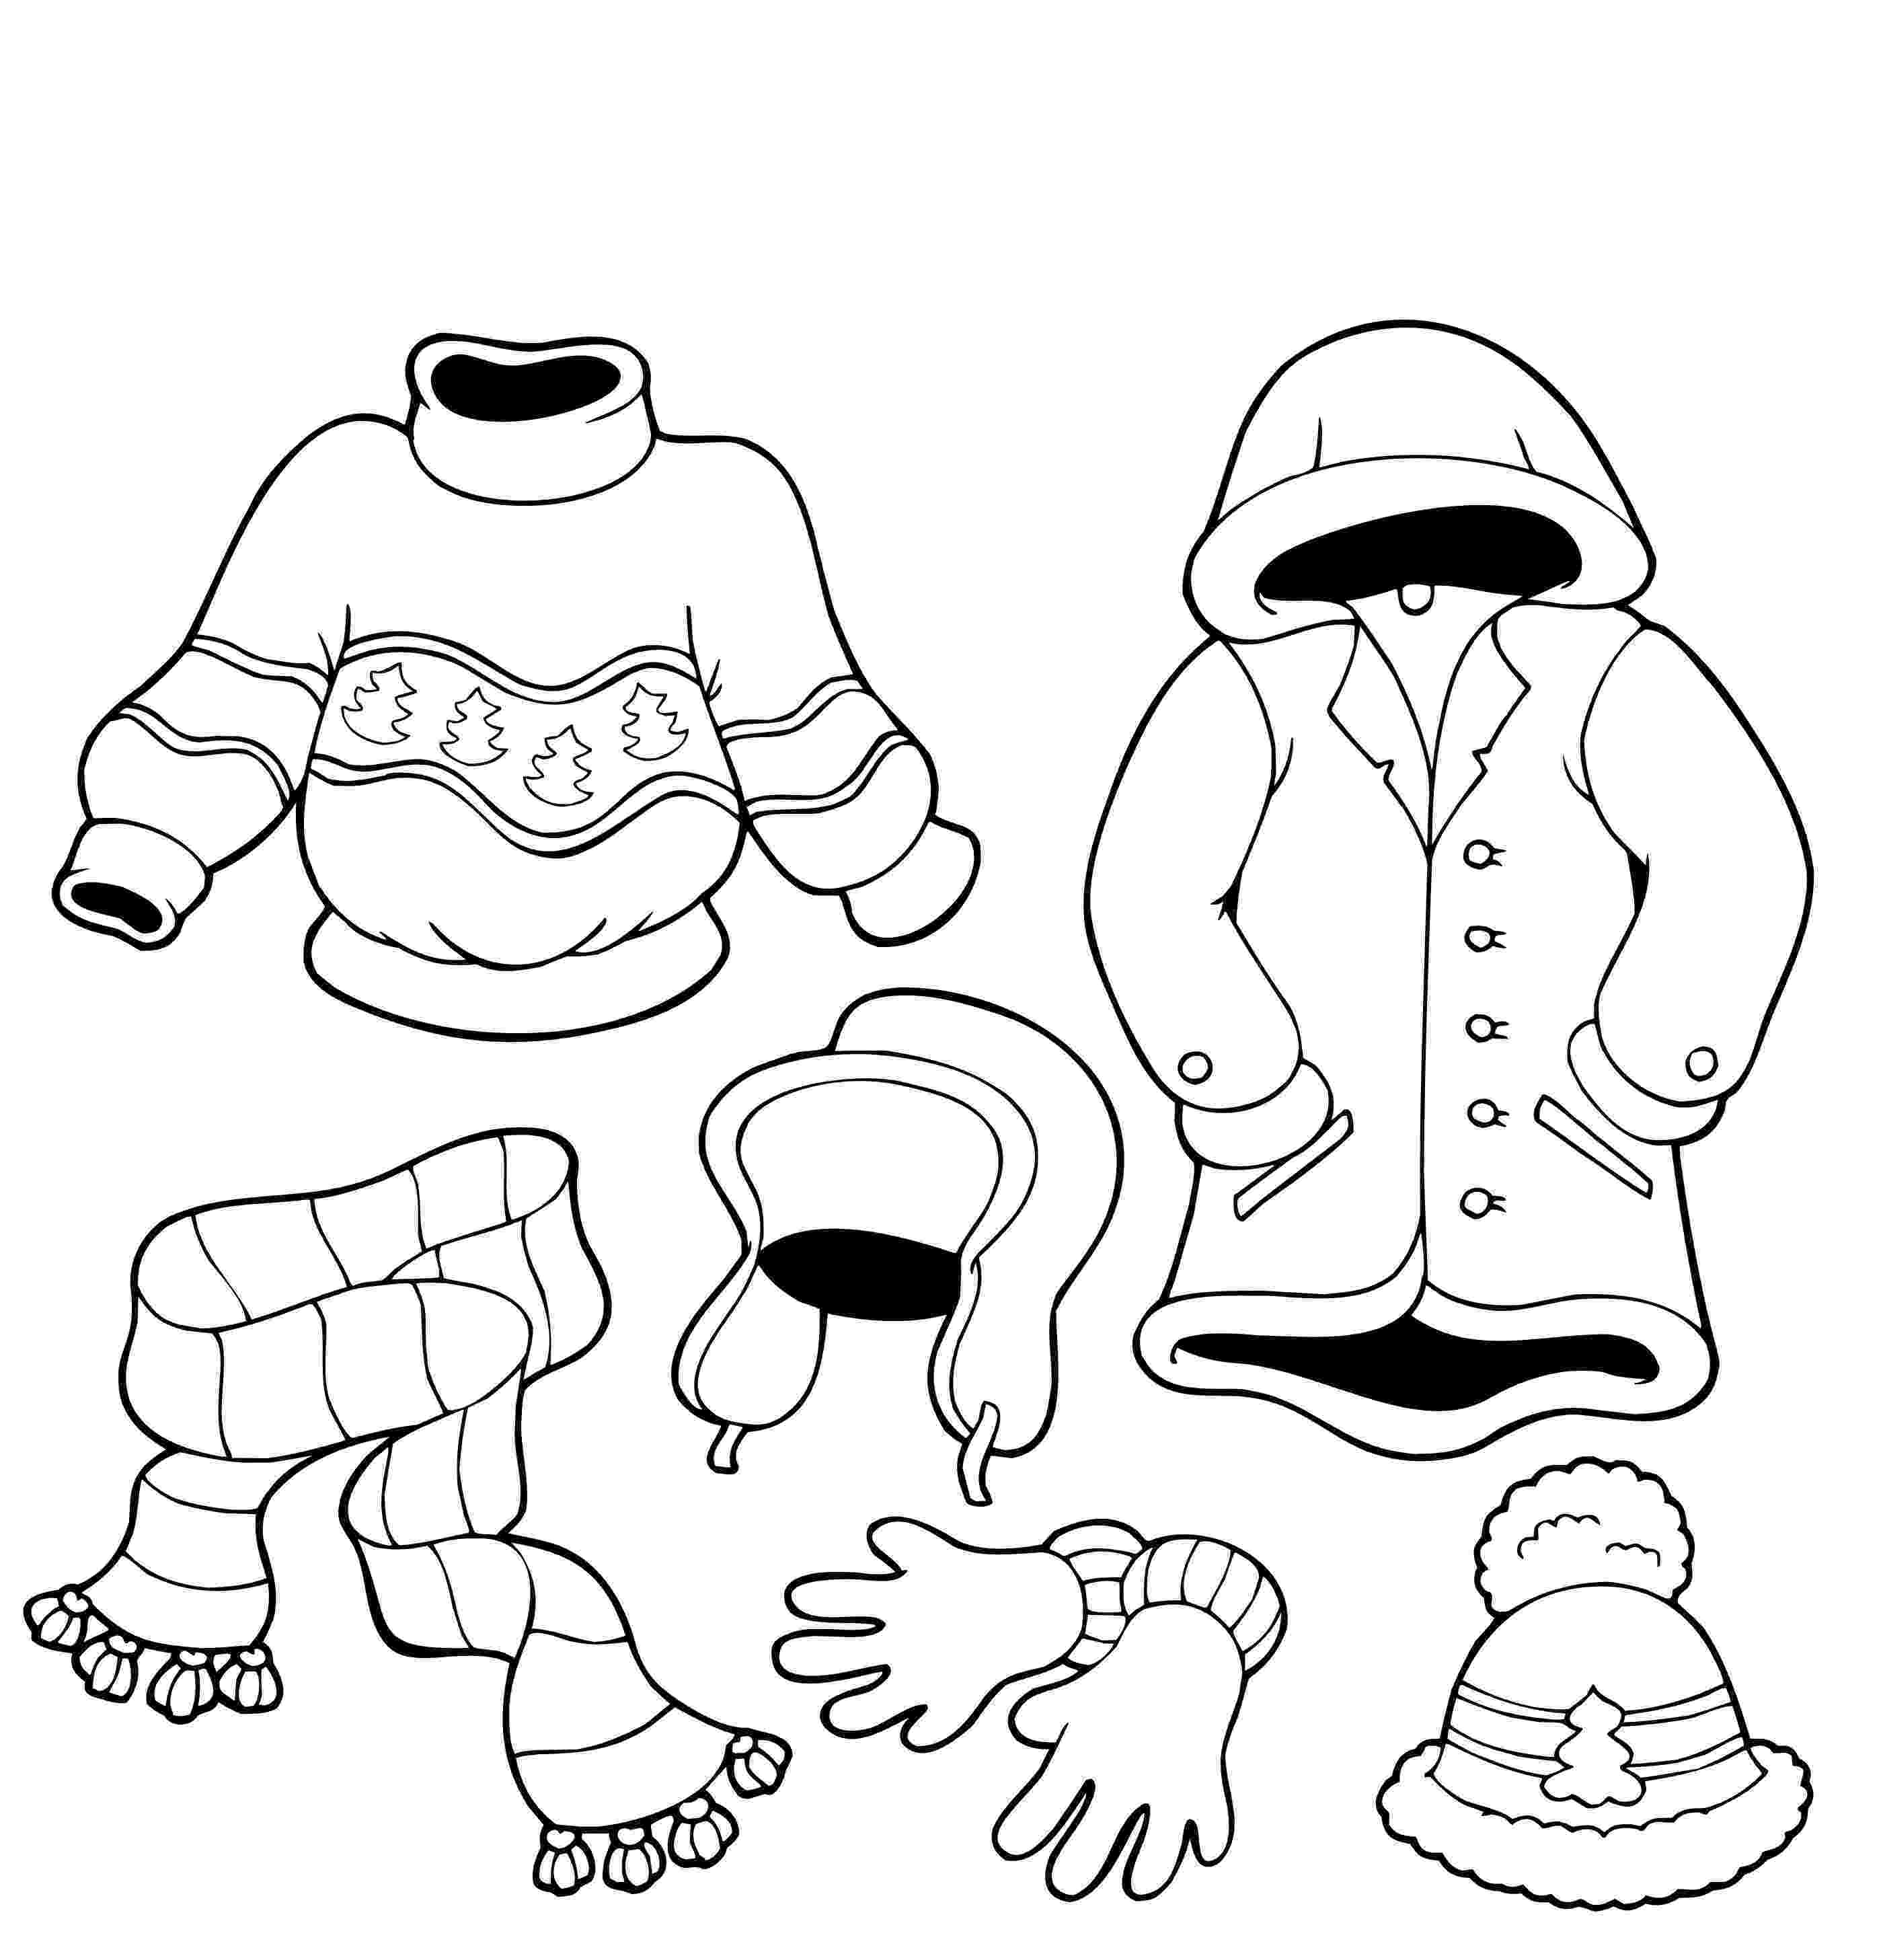 colouring clothes summer clothing coloring page coloring pages coloriage colouring clothes